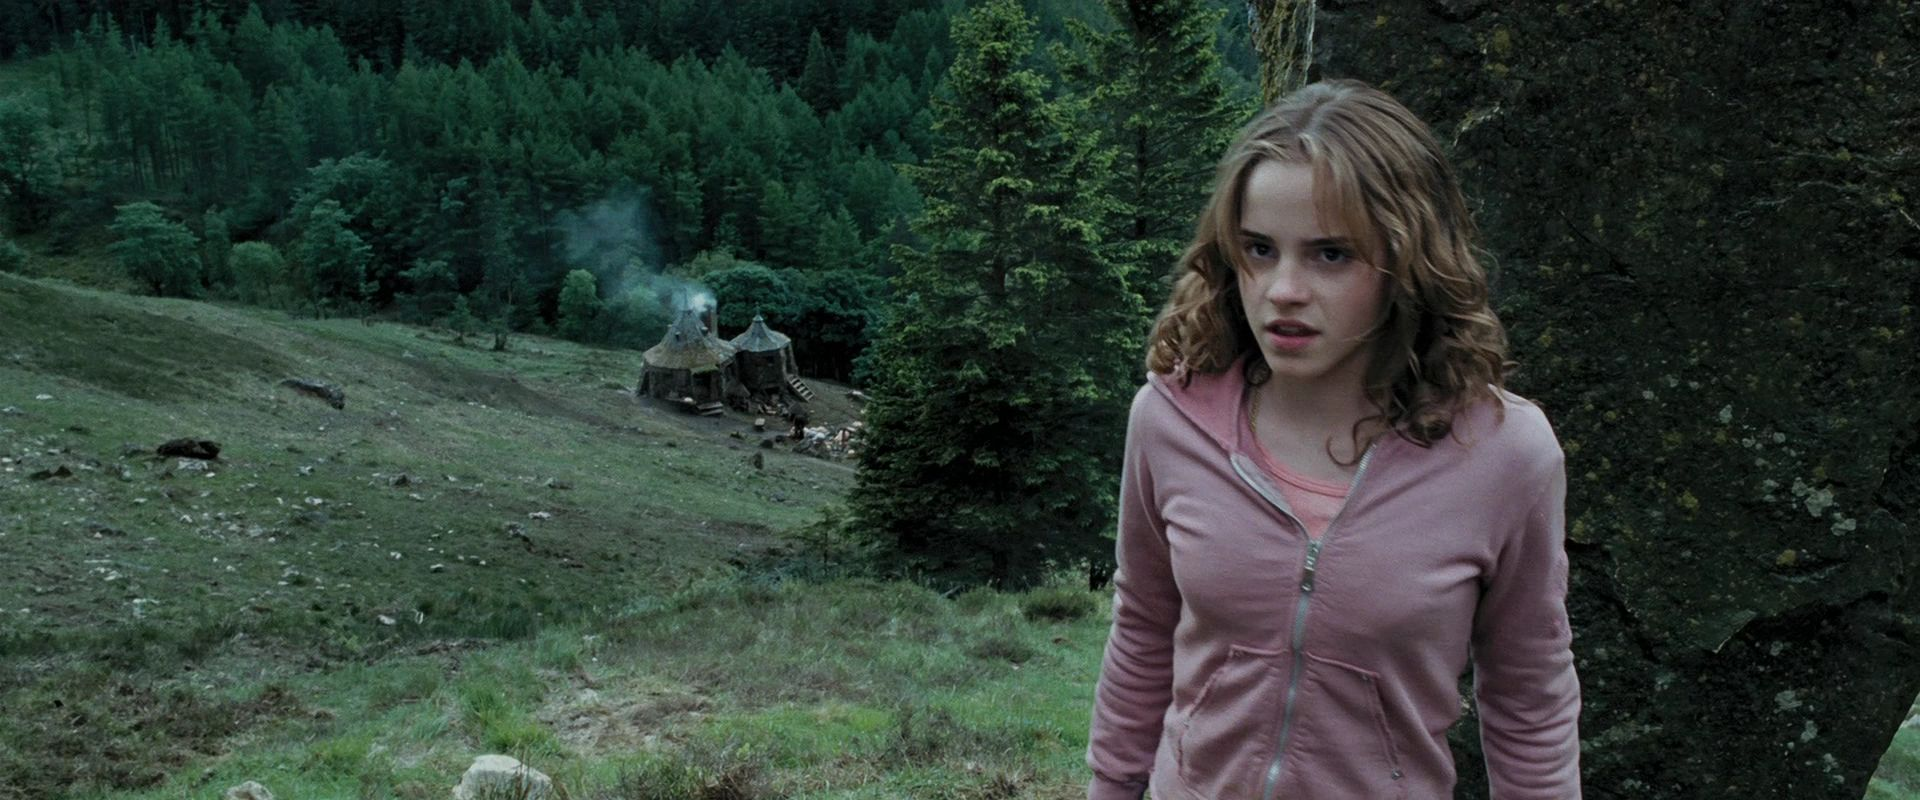 Emma Watson As Hermione Granger In Harry Potter And The Prisoner